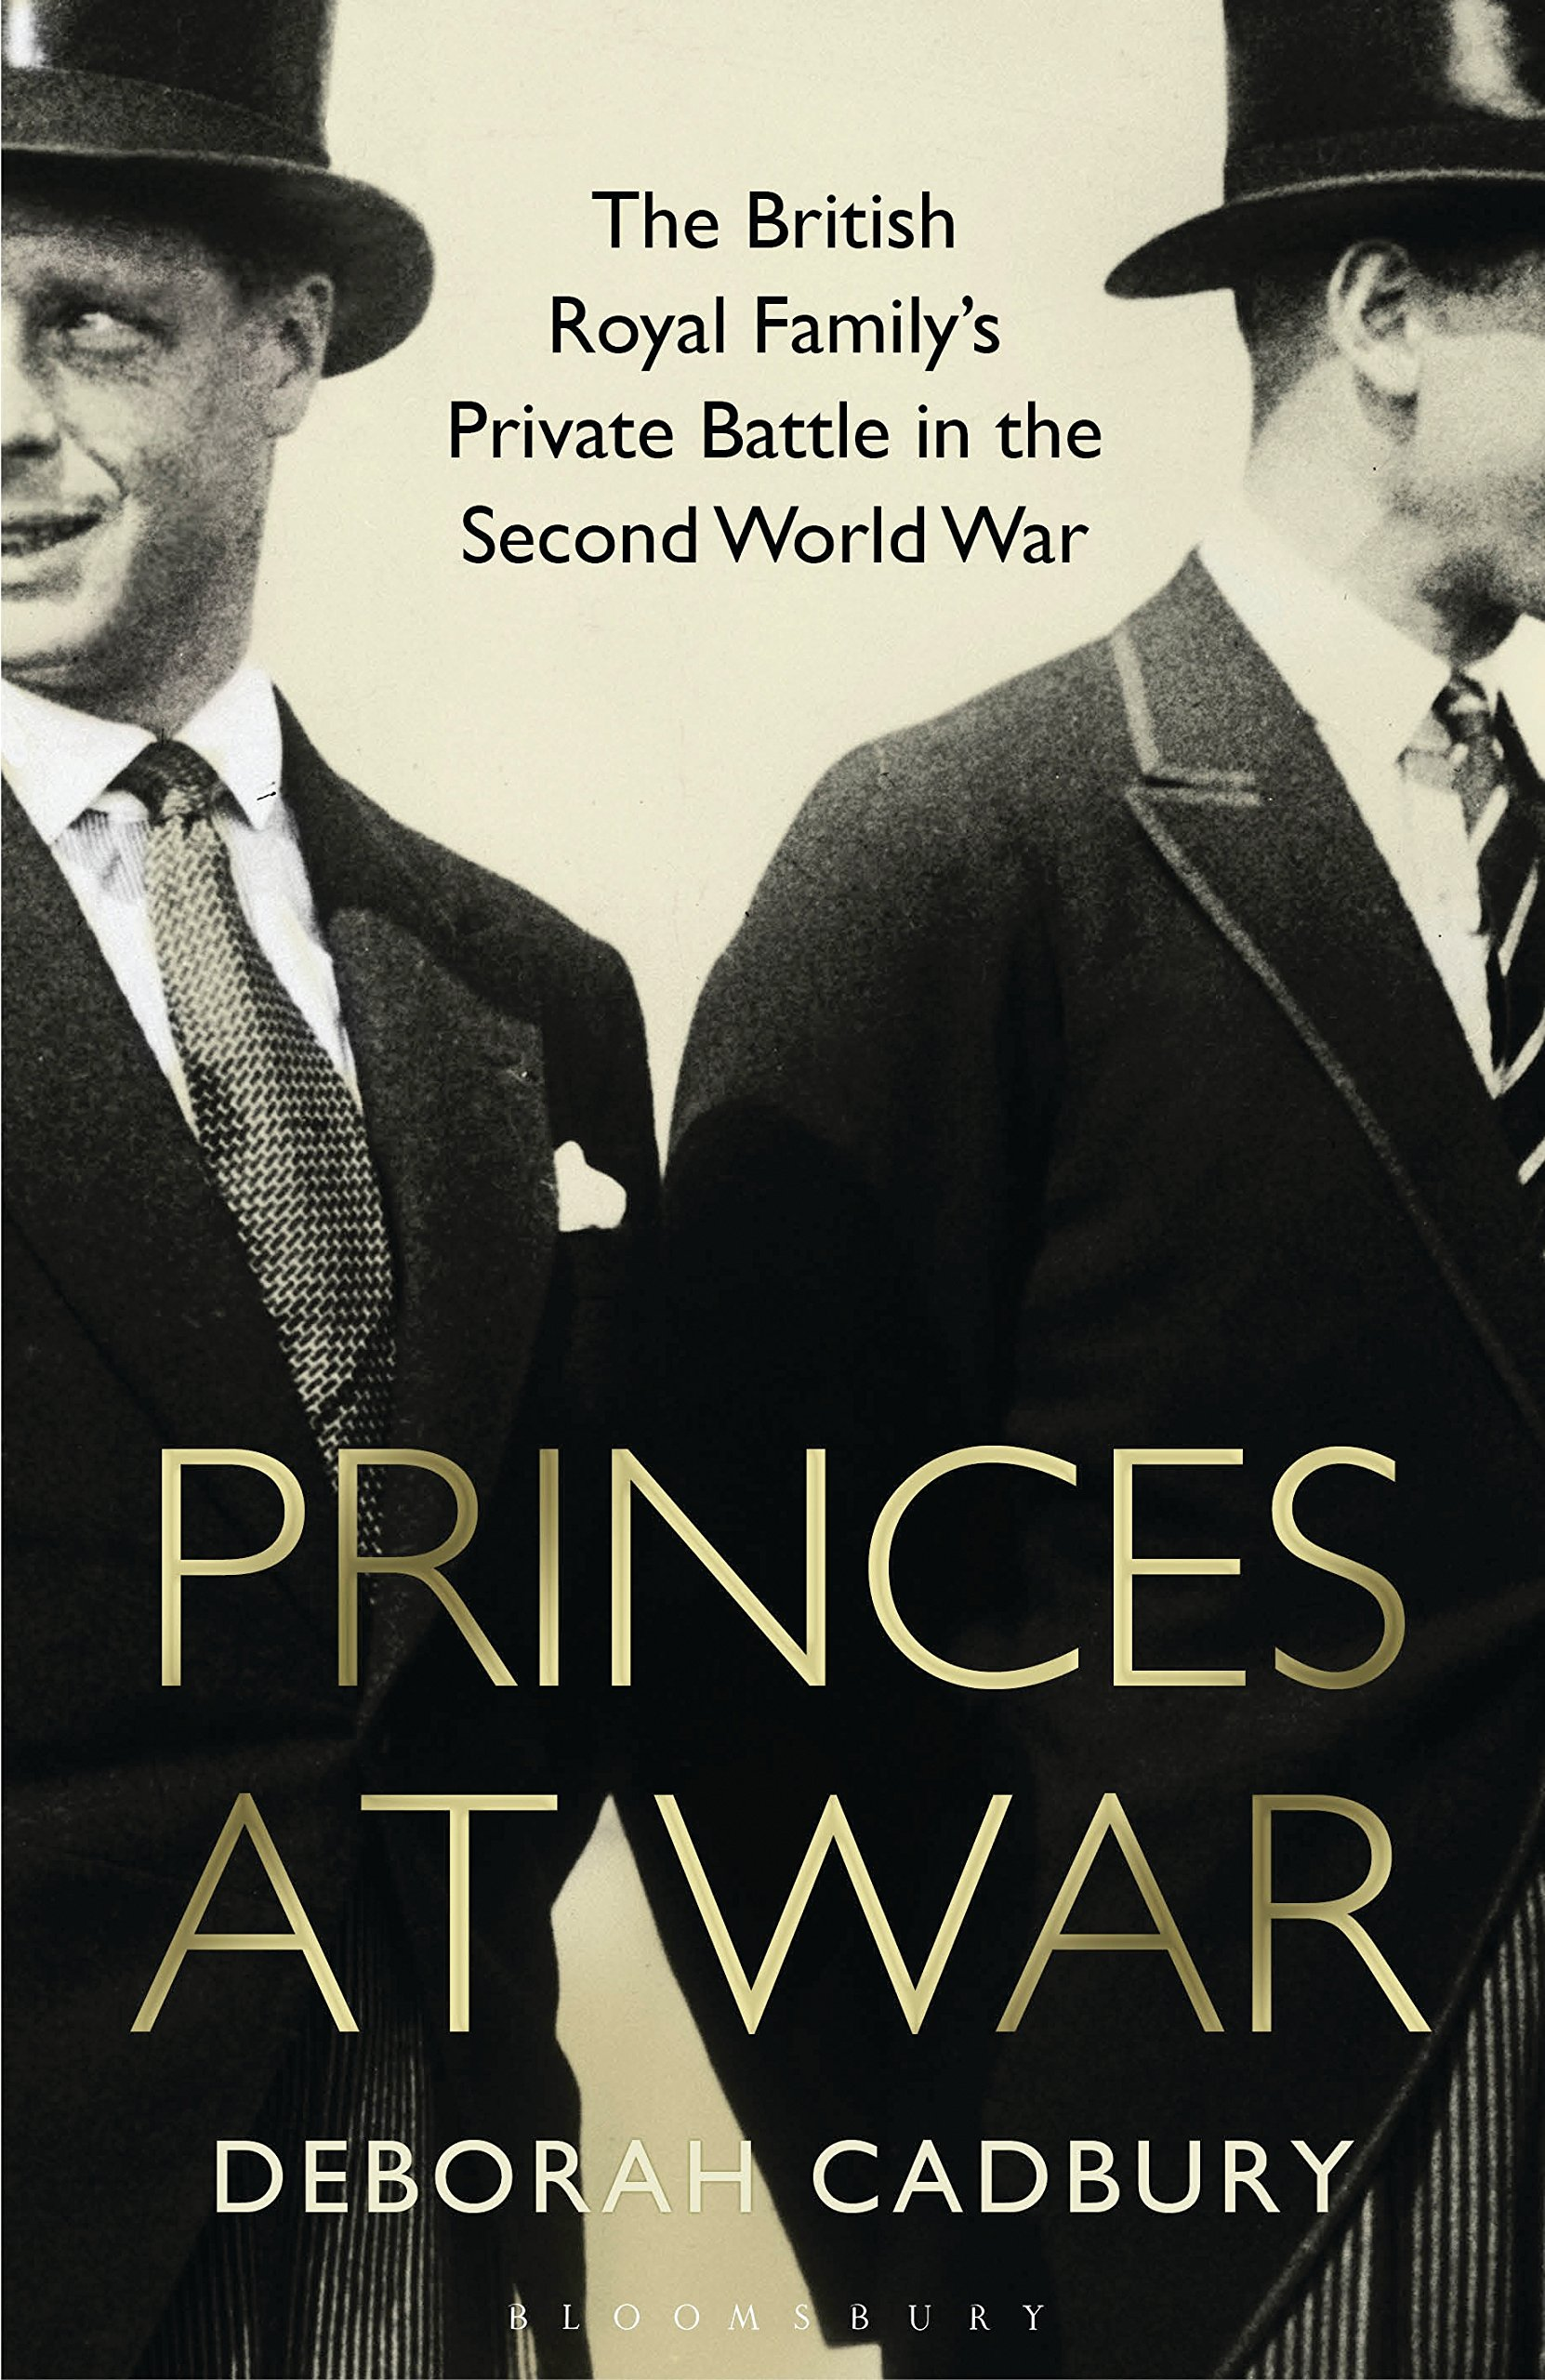 Princes at War: The British Royal Family's Private Battle in the Second World War: Amazon.co.uk: Deborah Cadbury: 9781408845240: Books